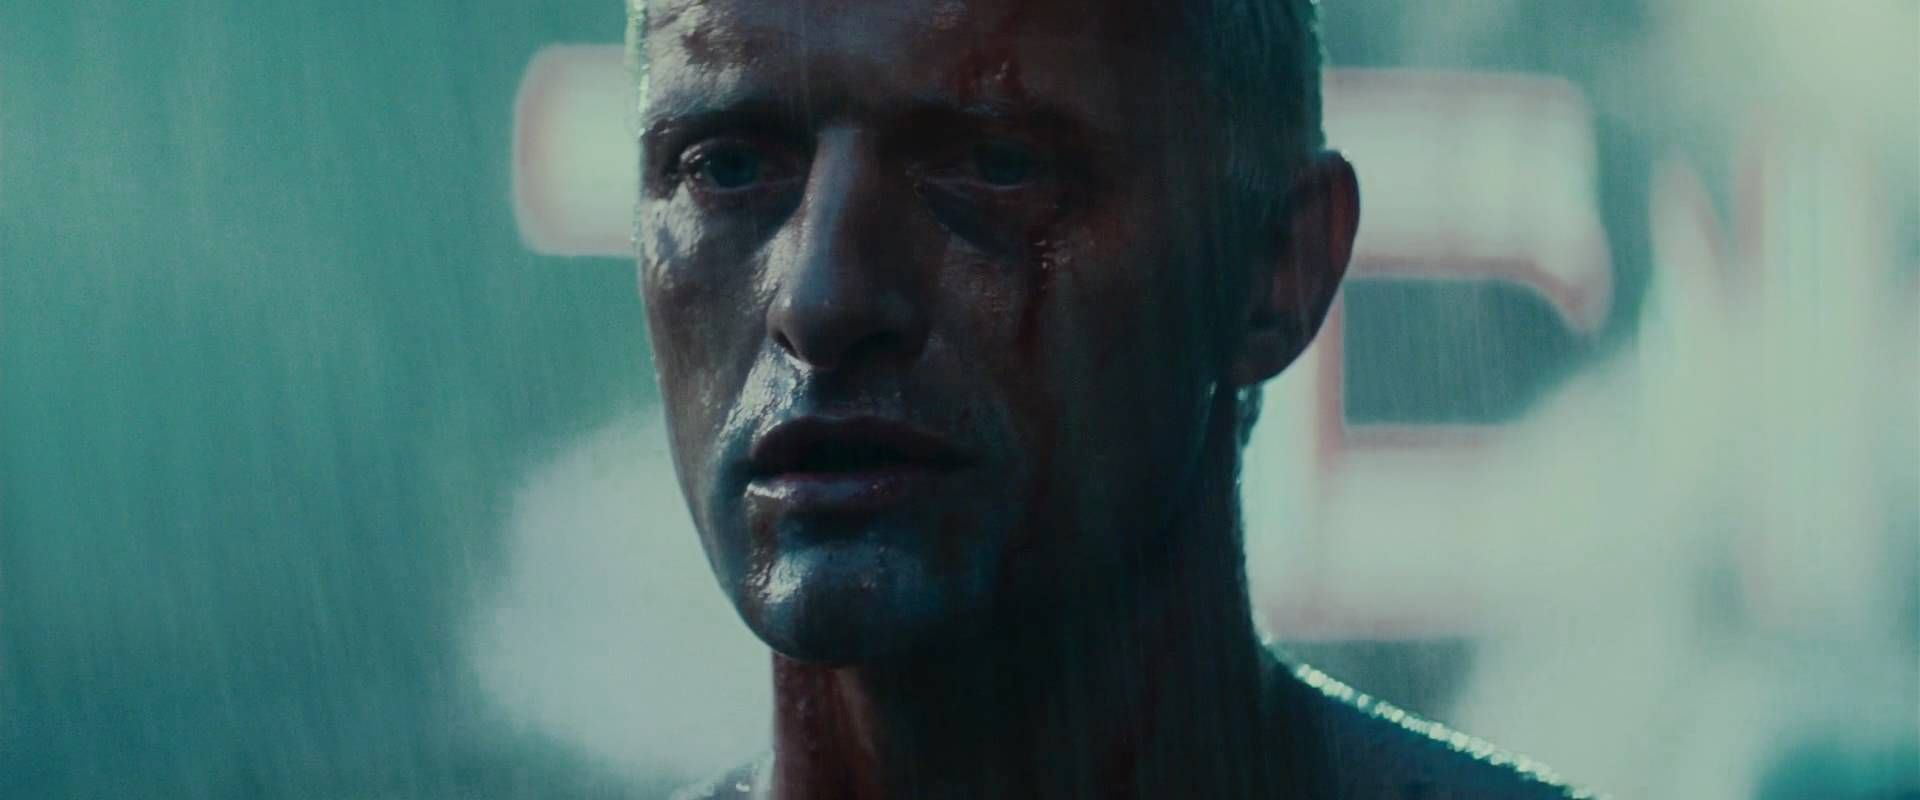 7. Roy Batty – Blade Runner